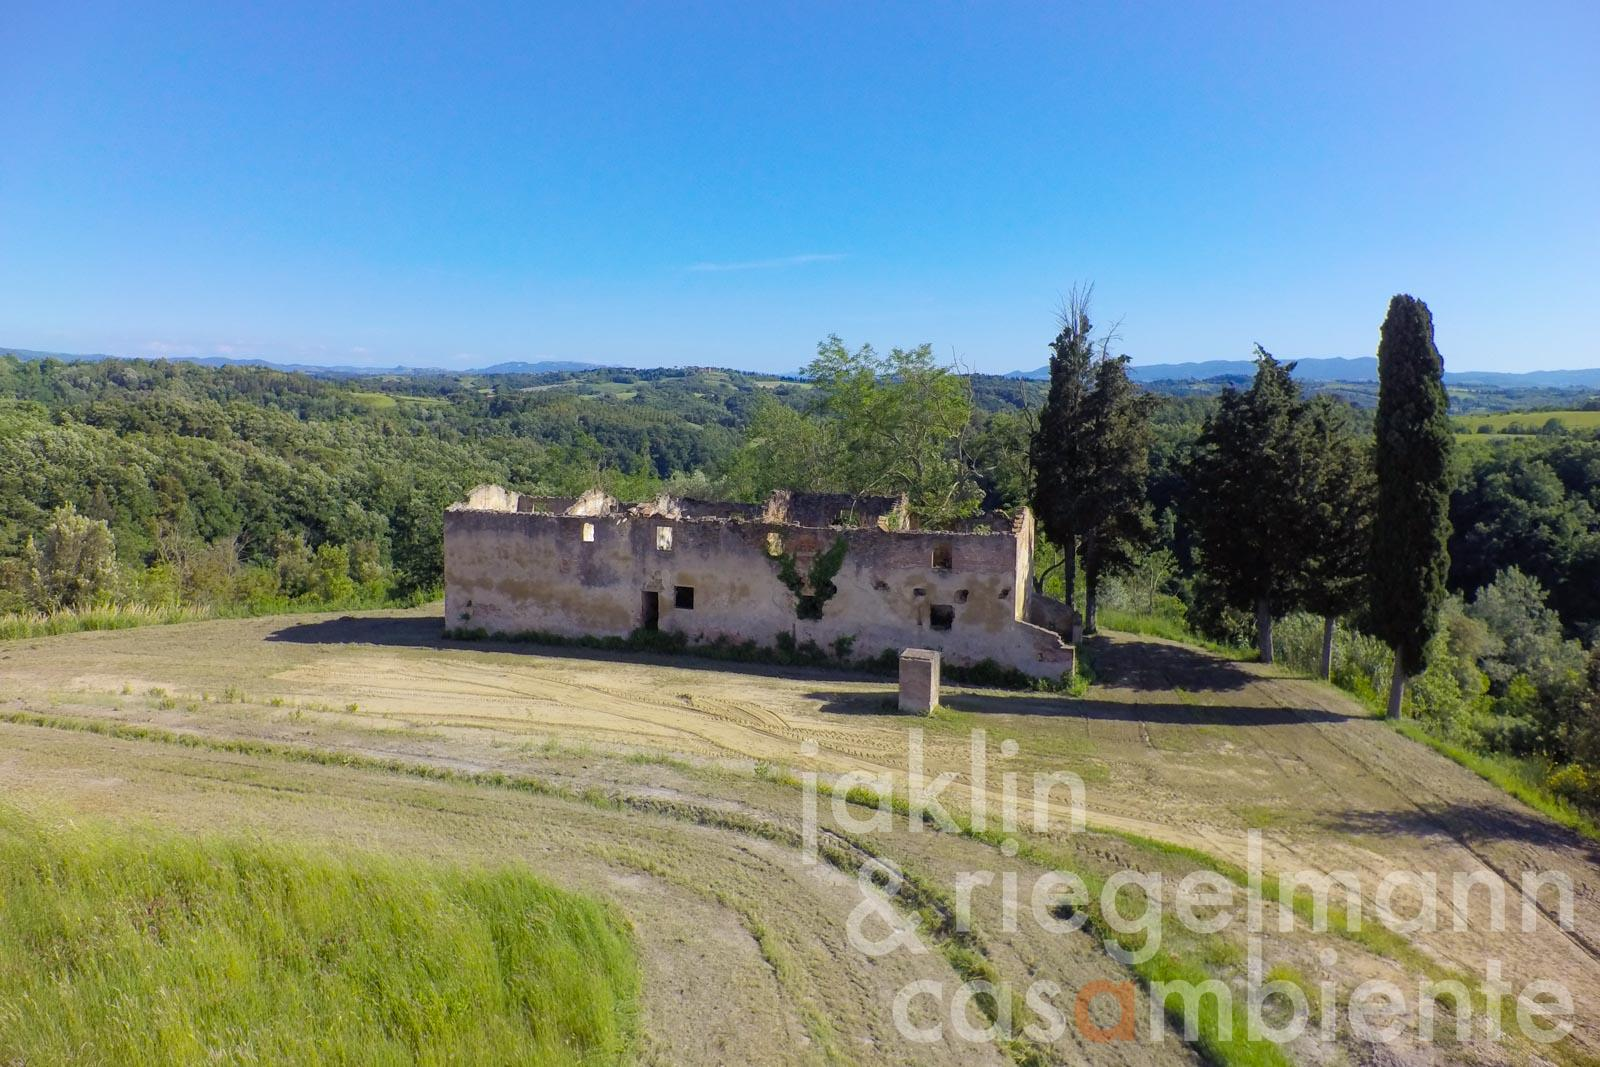 The project for two farmhouses for sale in panoramic position in the triangle Pisa-Siena-Florence in Tuscany